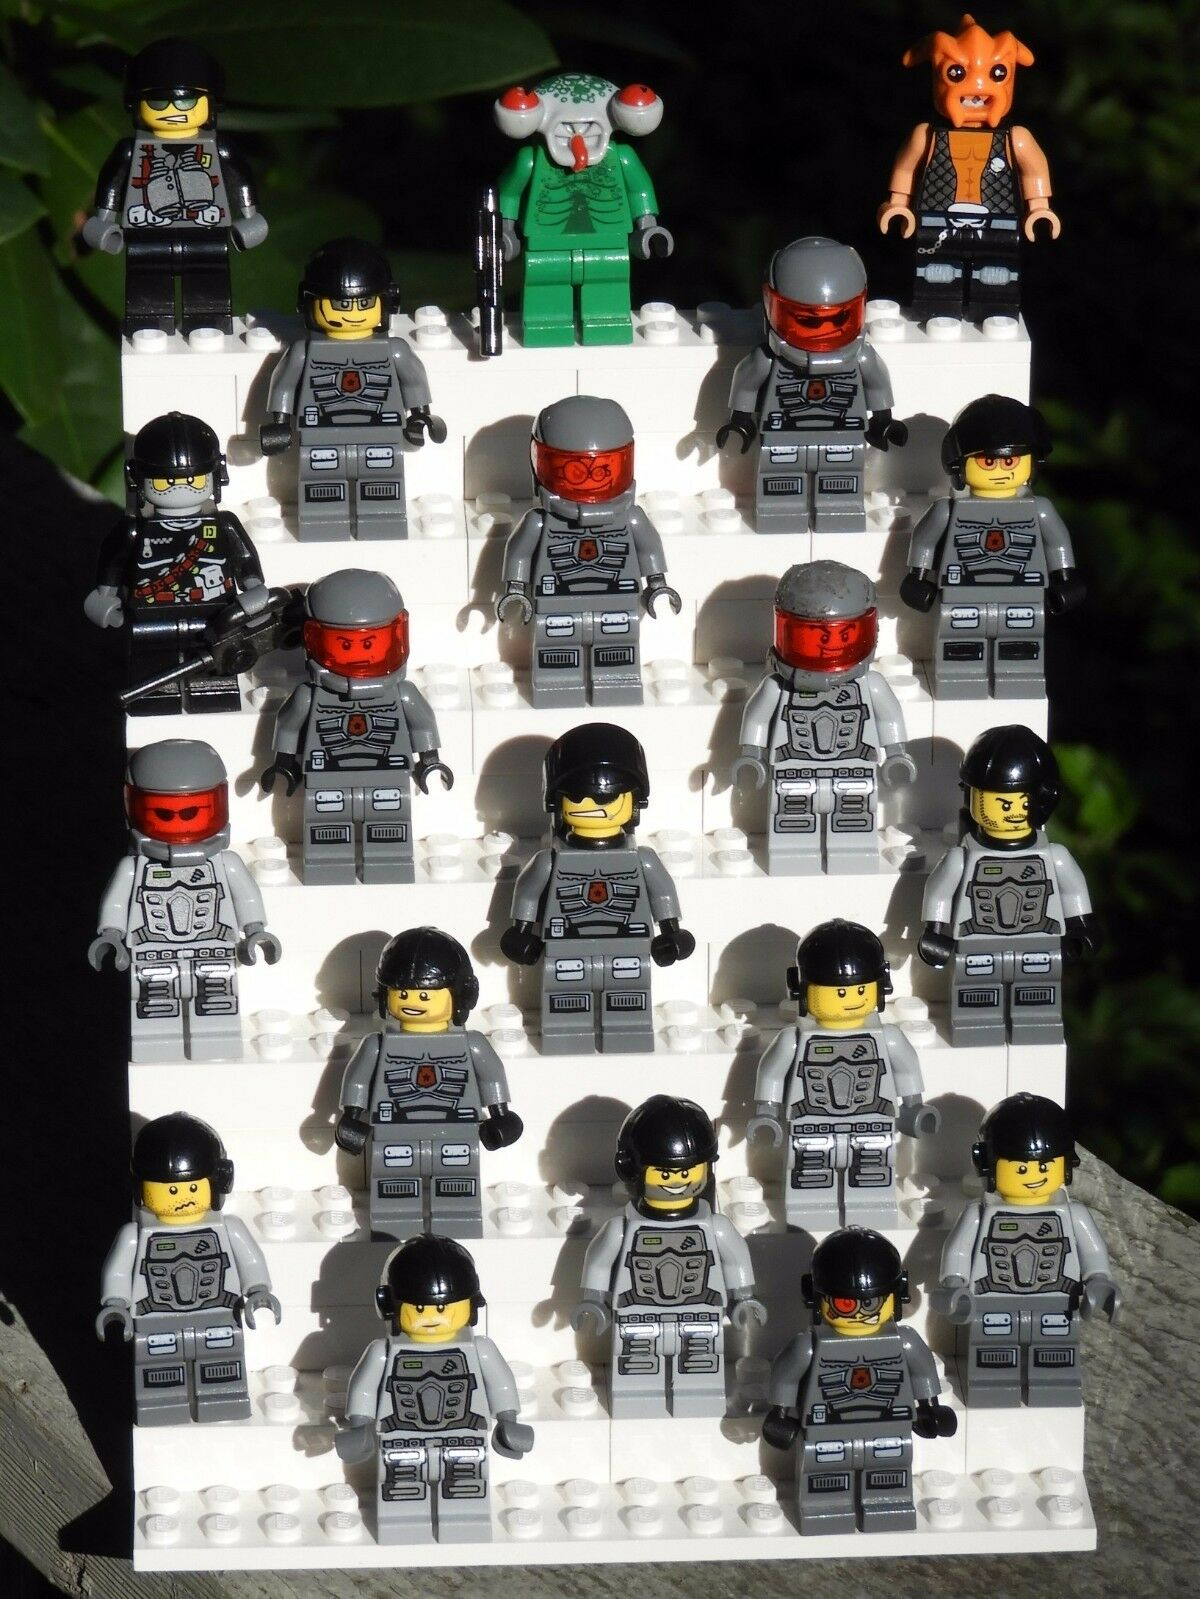 RossoUCED Genuine Lego Lot of 20 Space Police Minifigures Uomo & Aliens